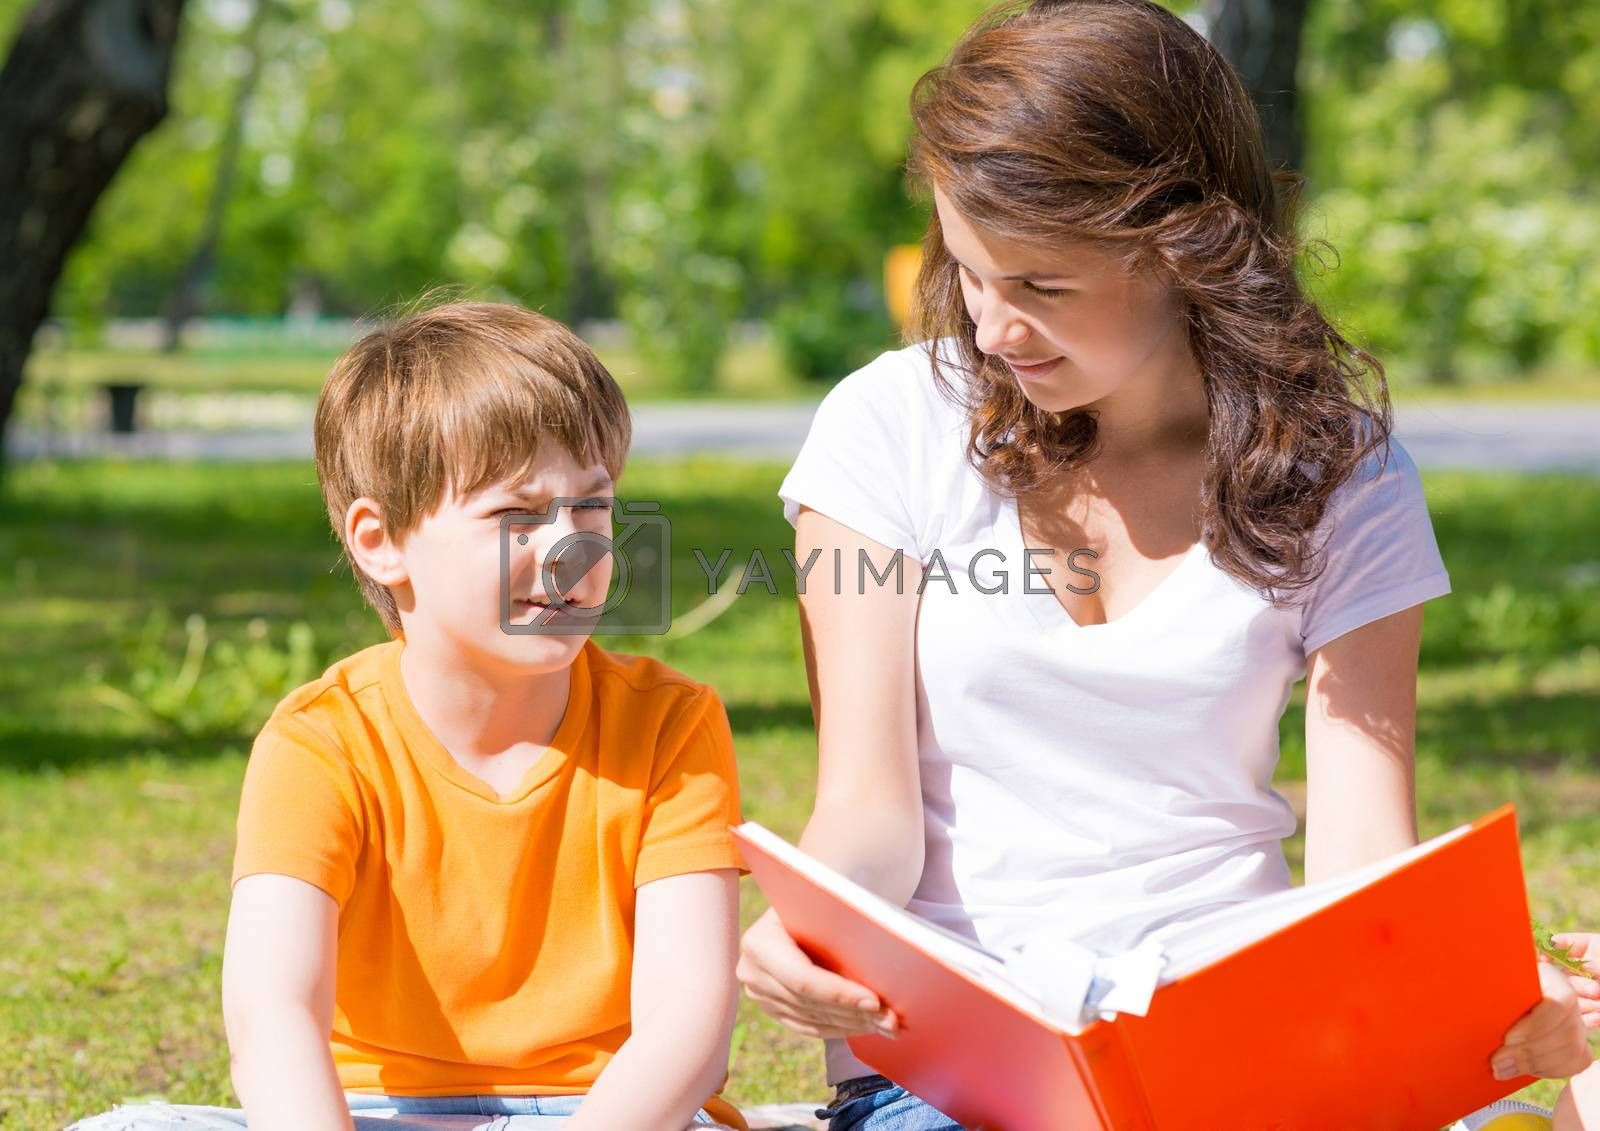 Royalty free image of reading a book together by adam121